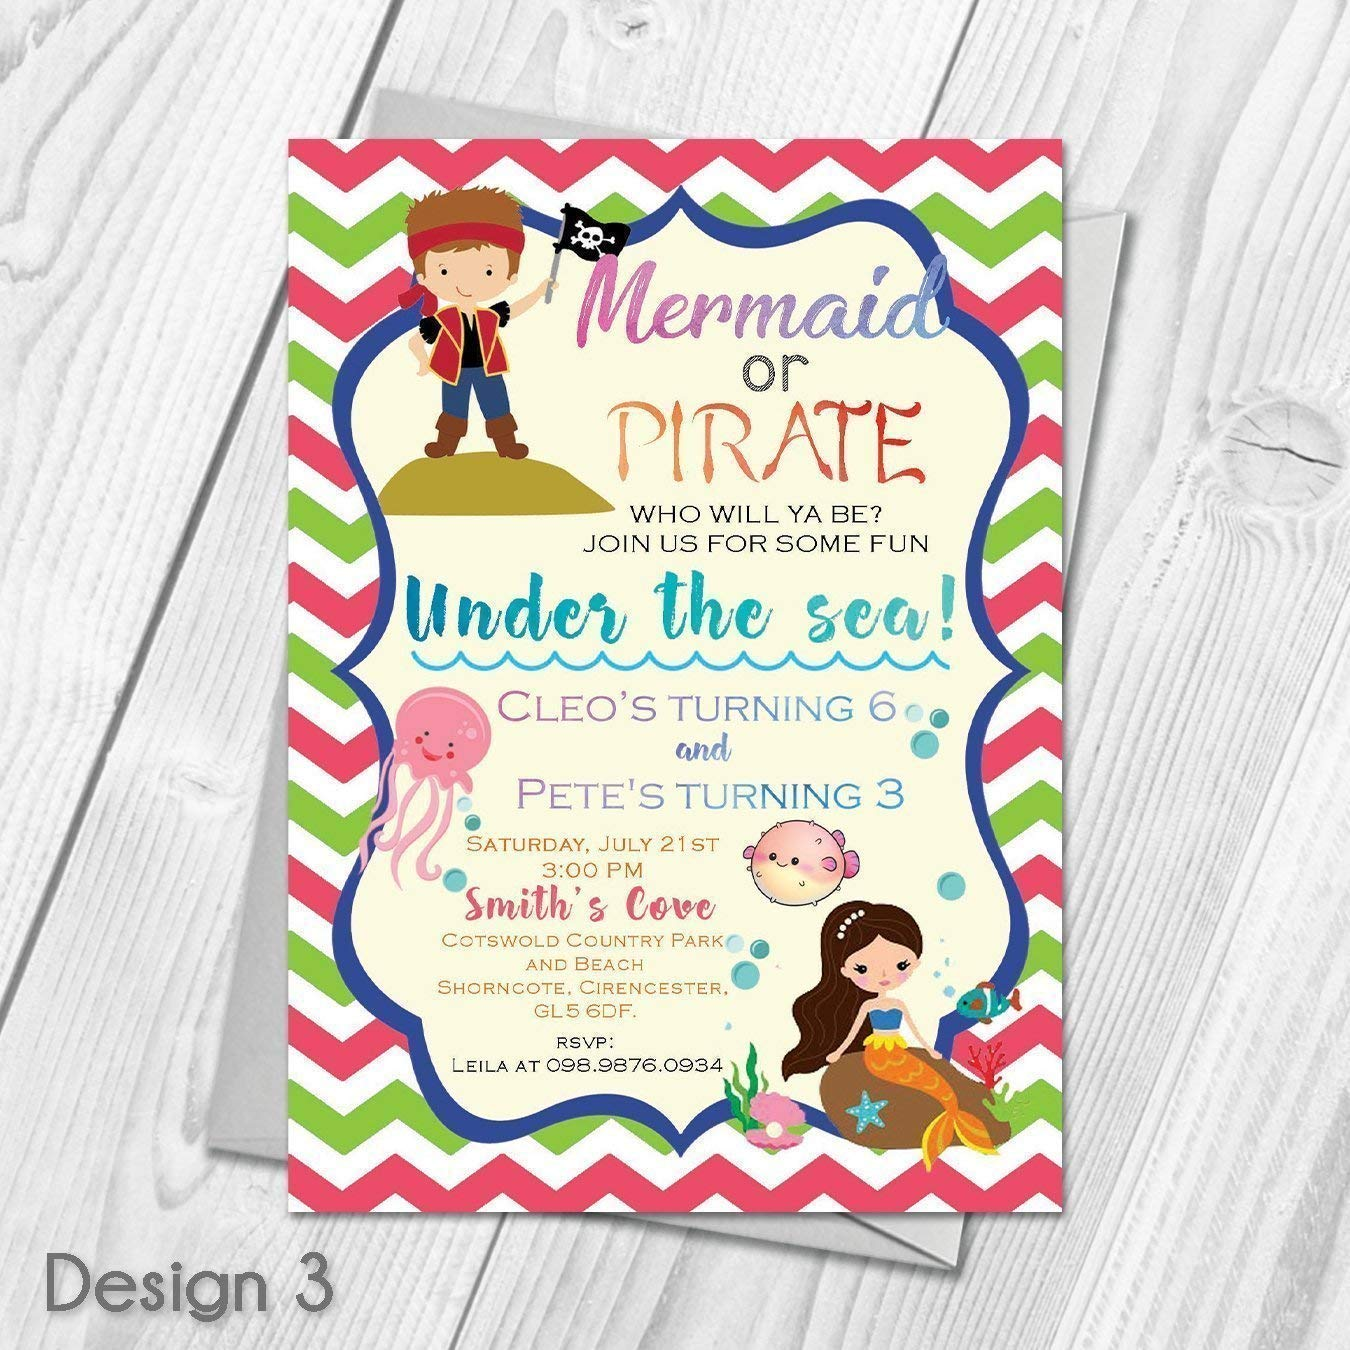 Personalised Mermaid And Pirate Birthday Party Invitations Thank